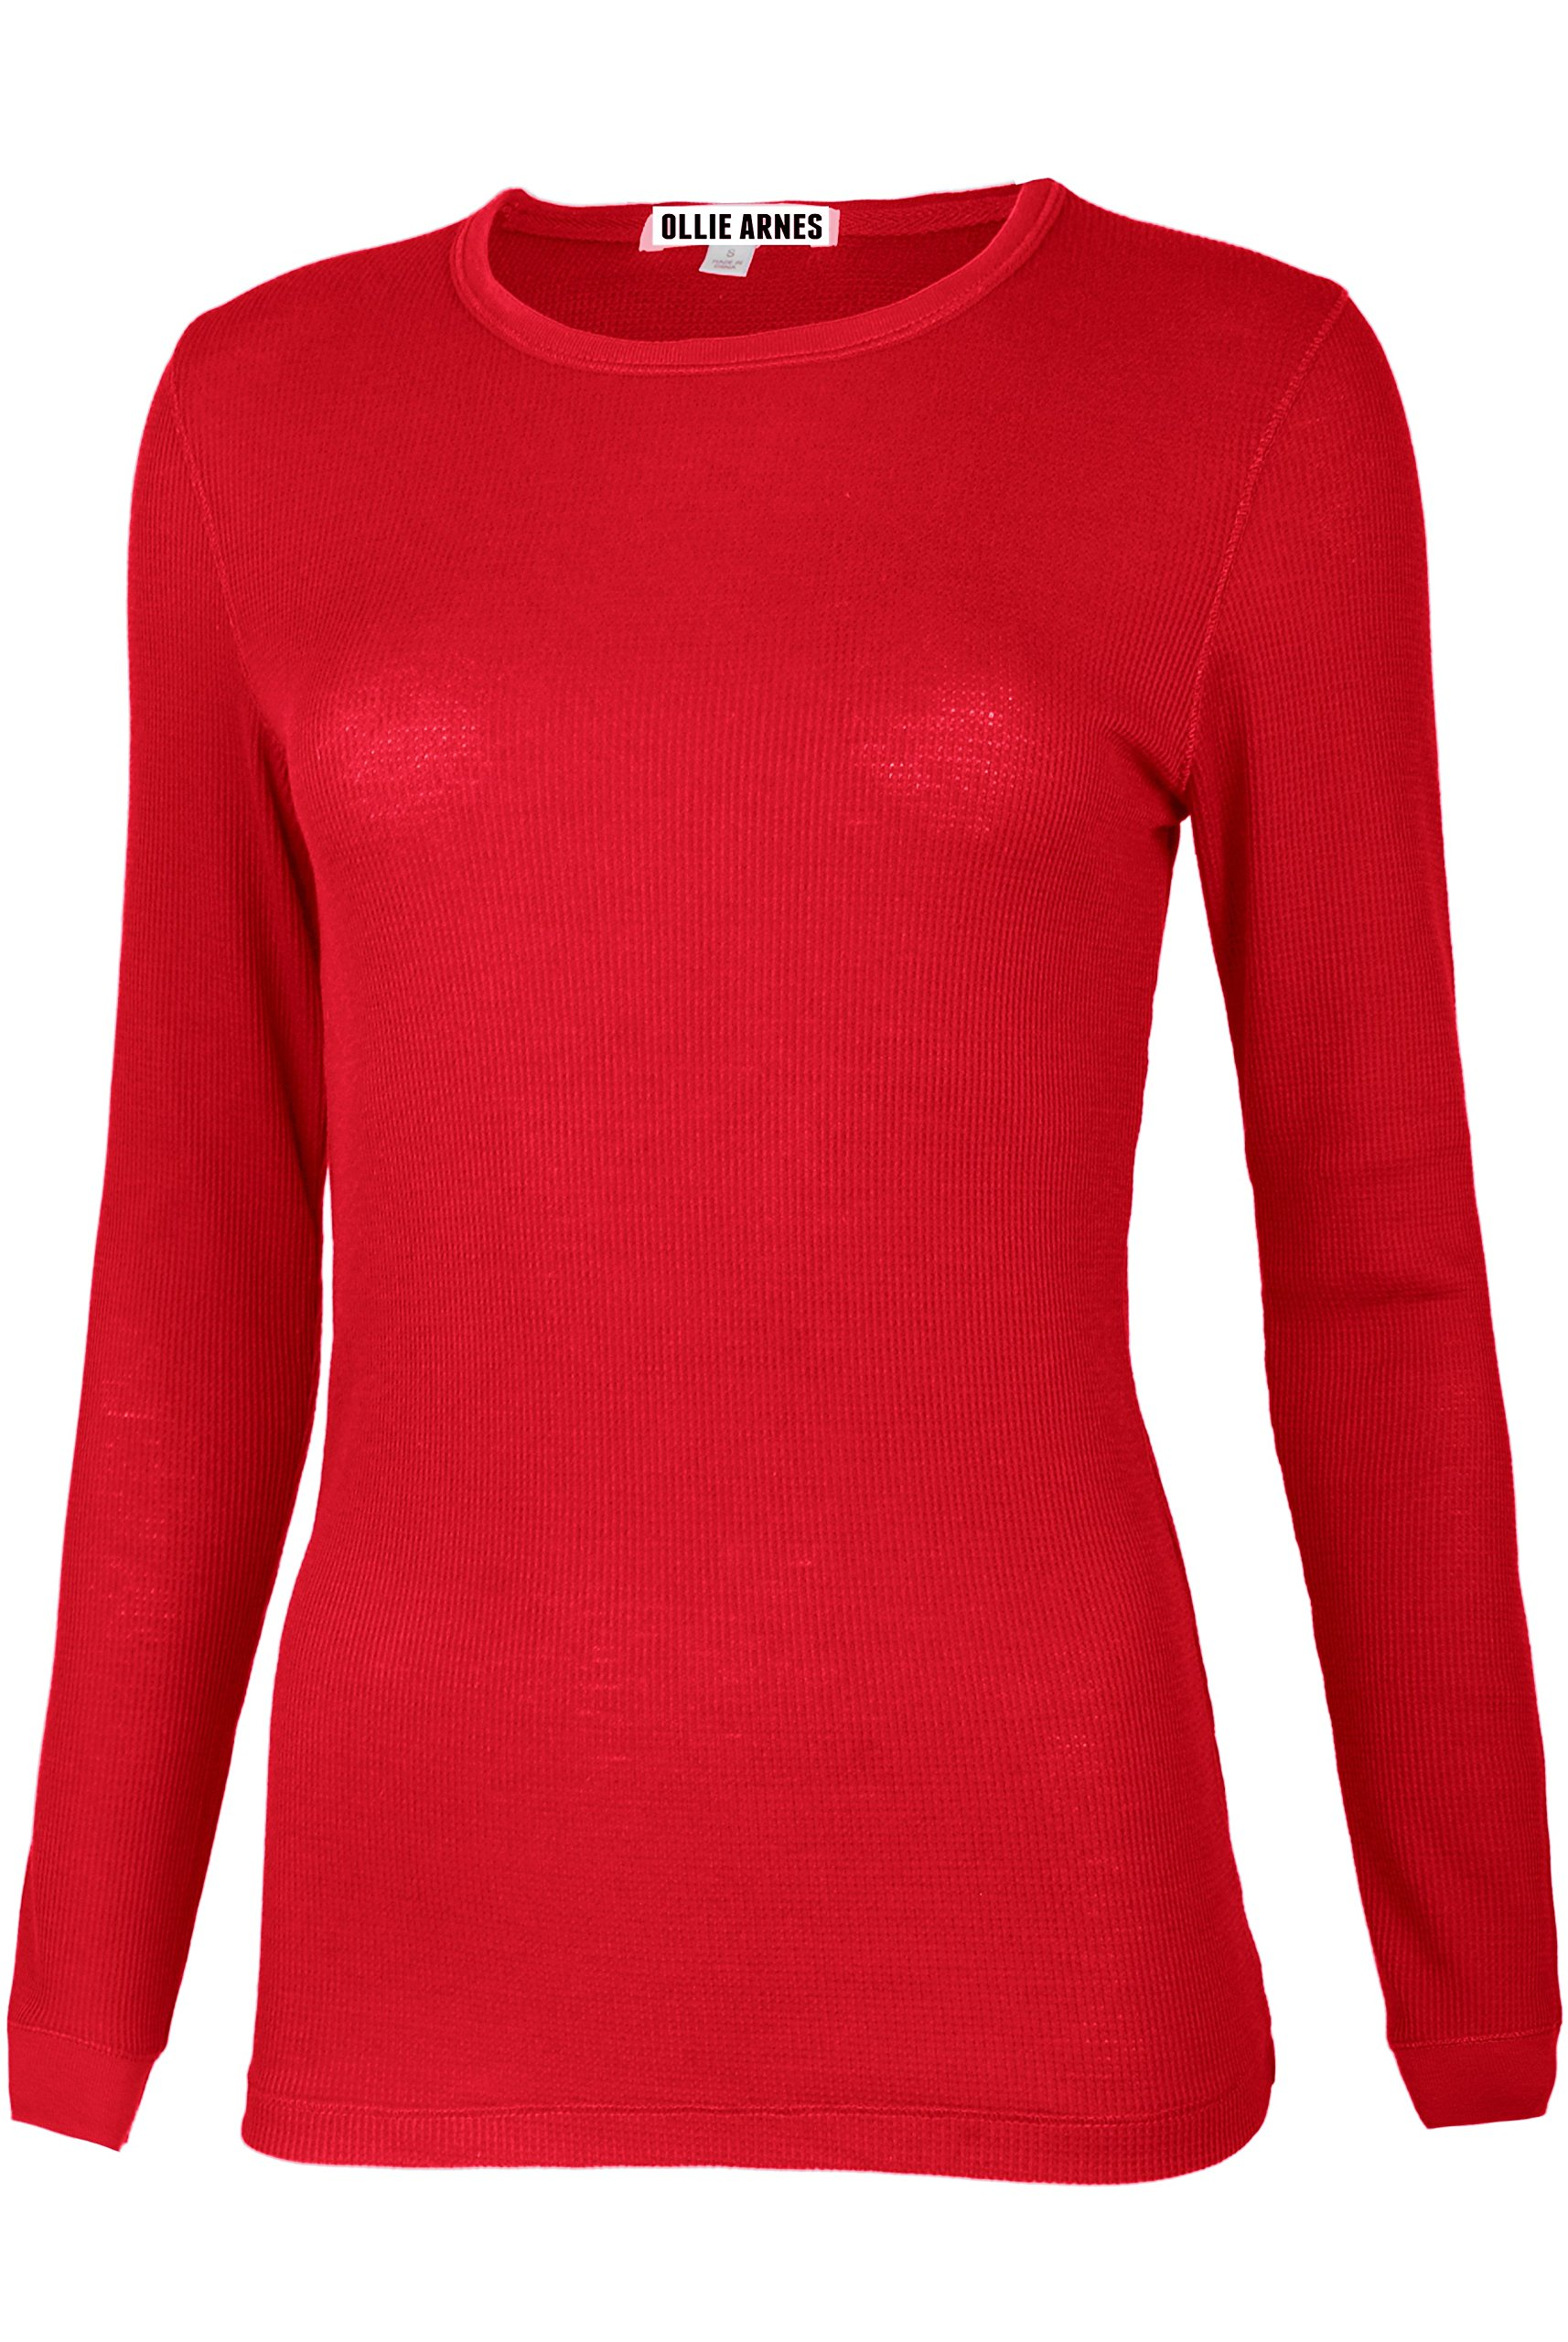 Ollie Arnes Women's Round Neck Fitted Long Sleeve Cool Sweater Shirt Top 99_RED 2X